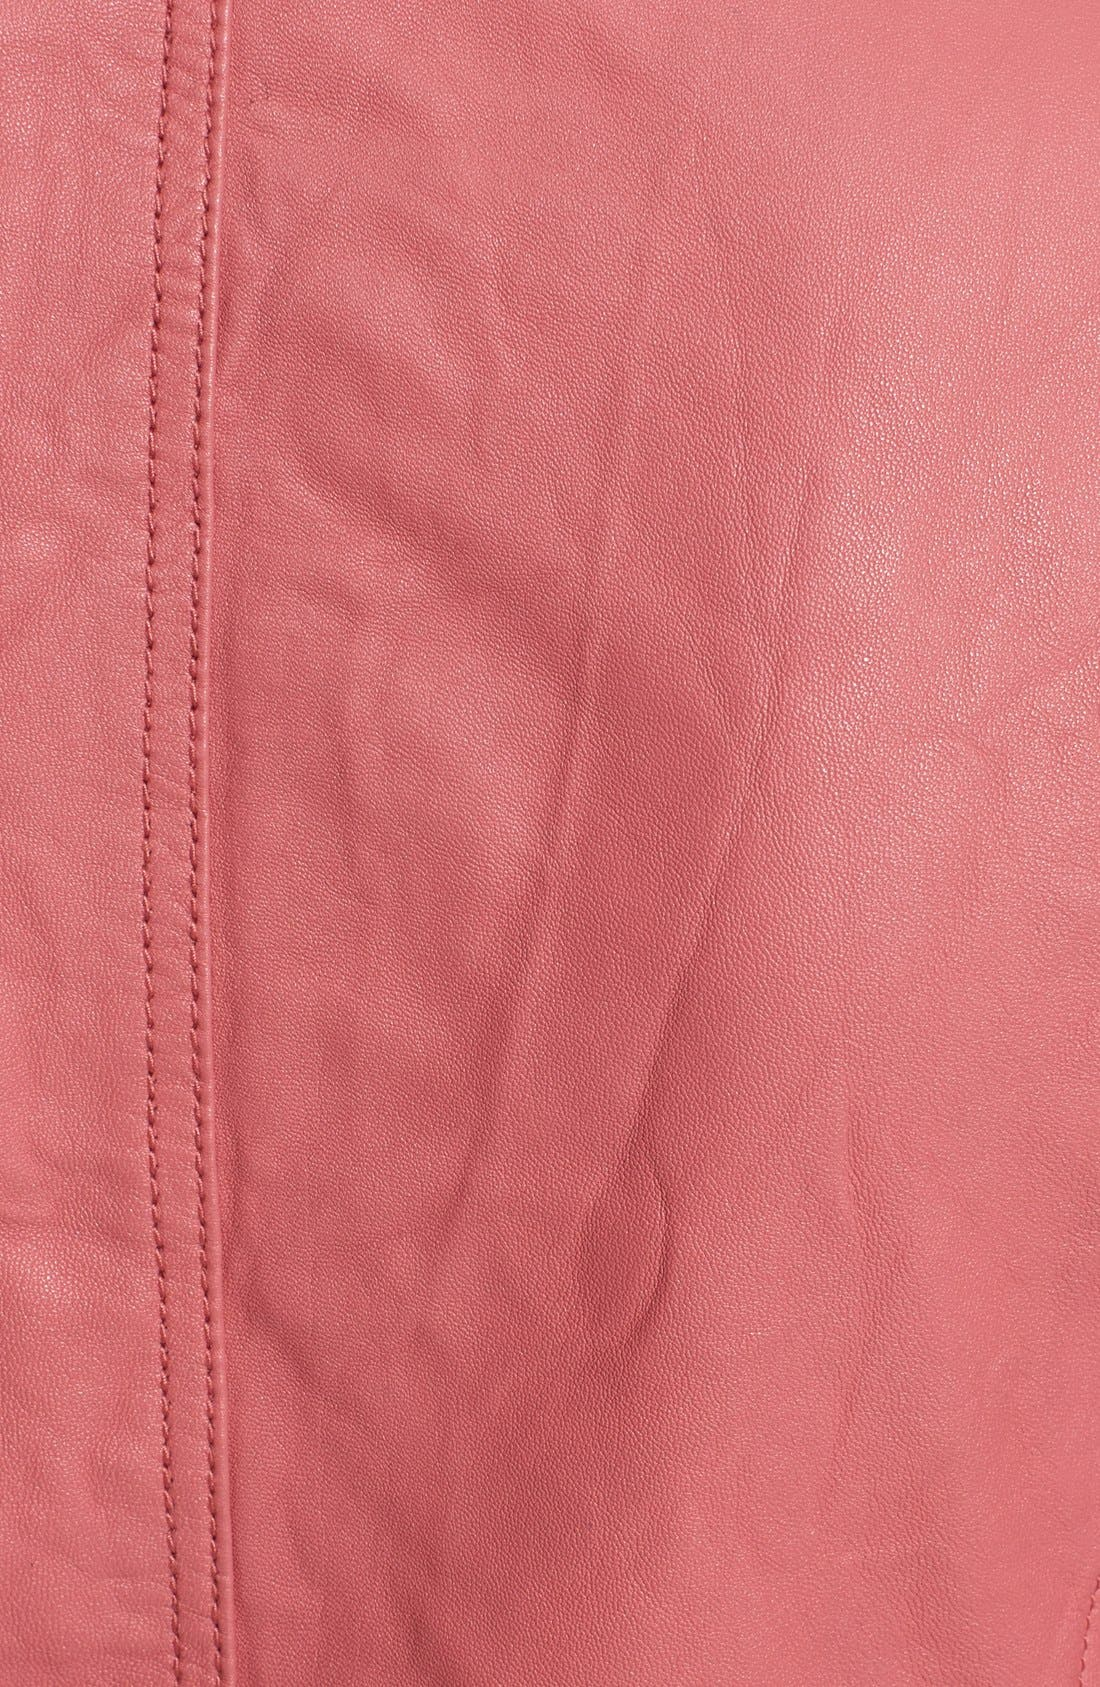 REBECCA TAYLOR,                             Washed Leather Moto Jacket,                             Alternate thumbnail 3, color,                             651